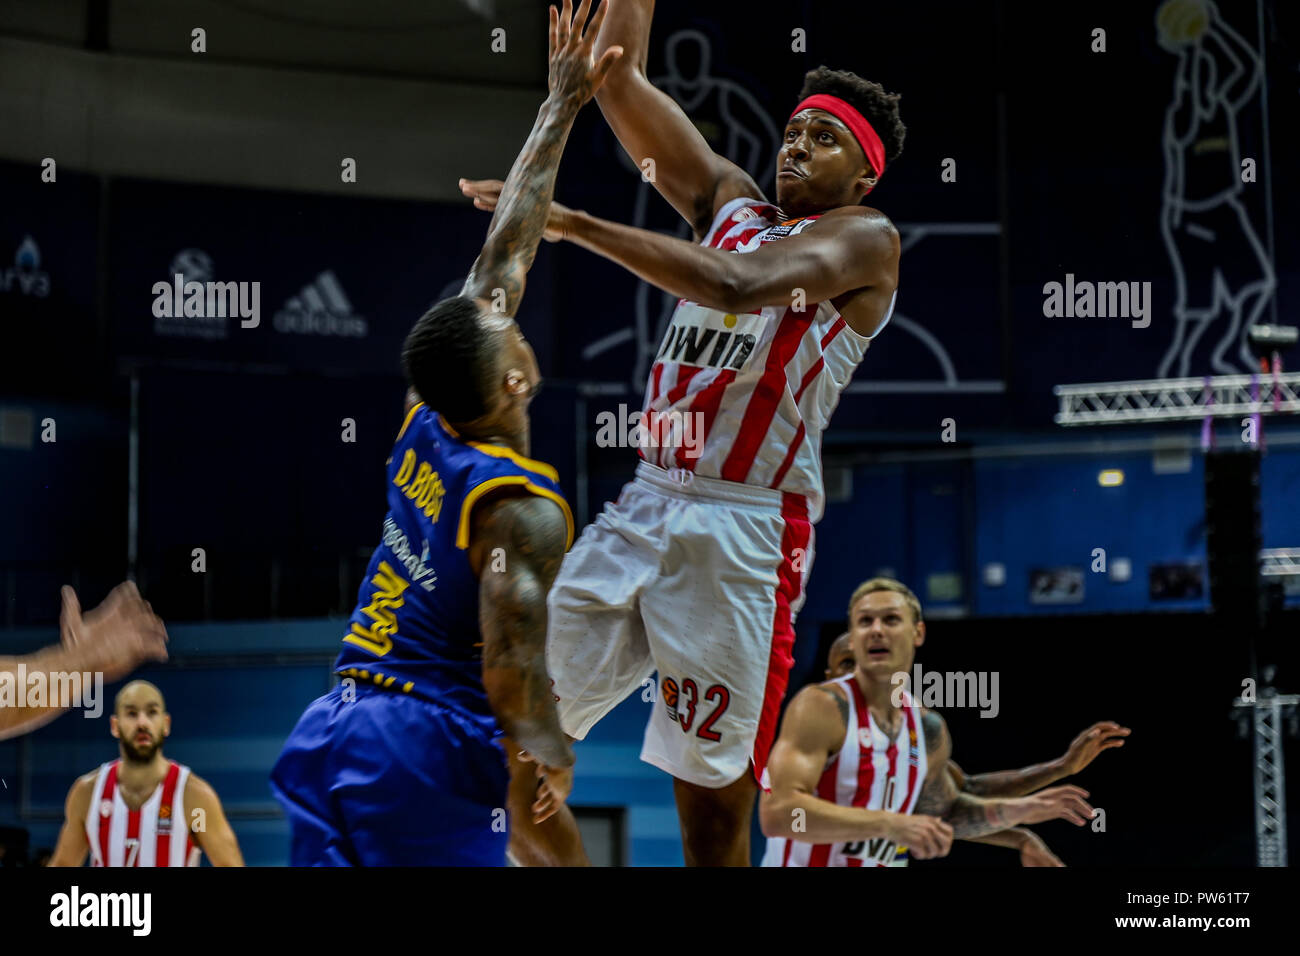 Zach LeDay, #32 of Olympiacos Piraeus in action against #3, Dee Bost, of Khimki Moscow in the Turkish Airlines Euroleague Opening round of the 2018-2019 season. (Olympiacos Piraeus defeated Khimki Moscow Region 87-66) - Stock Image